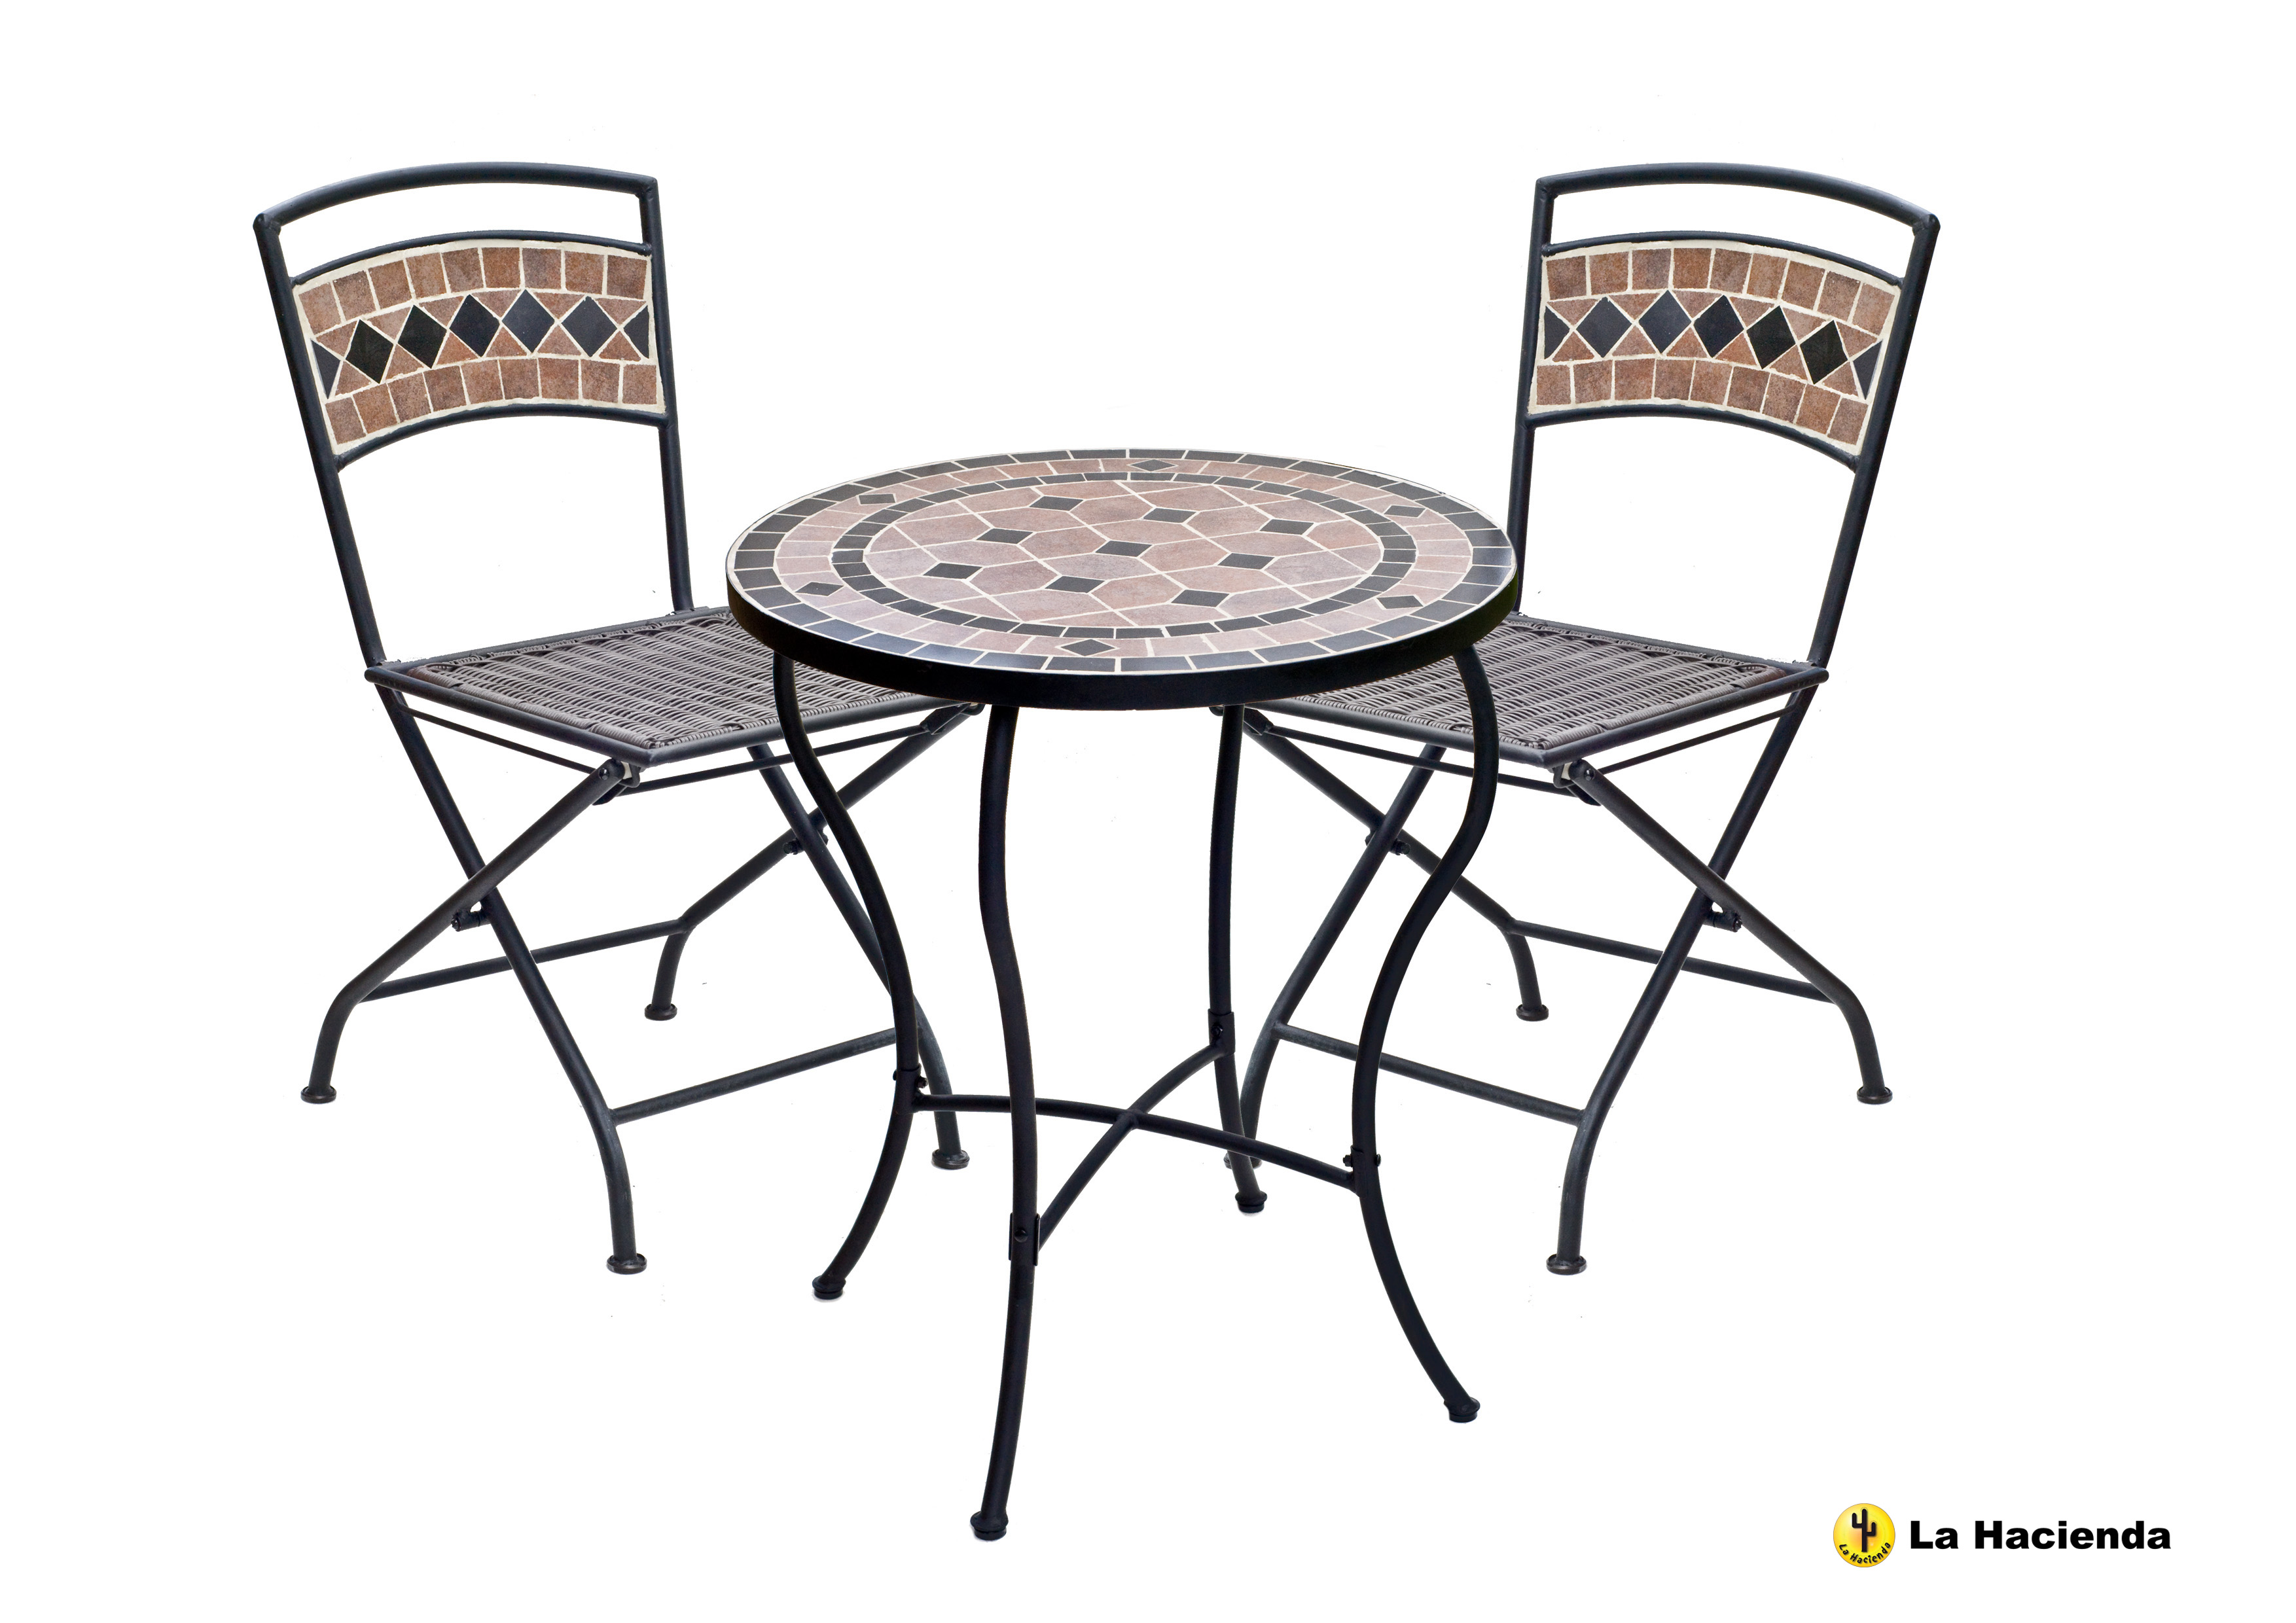 POMPEI BISTRO TABLE CHAIR SET 2 CHAIRS PATIO GARDEN  : 58151 from www.ebay.co.uk size 3508 x 2480 jpeg 906kB